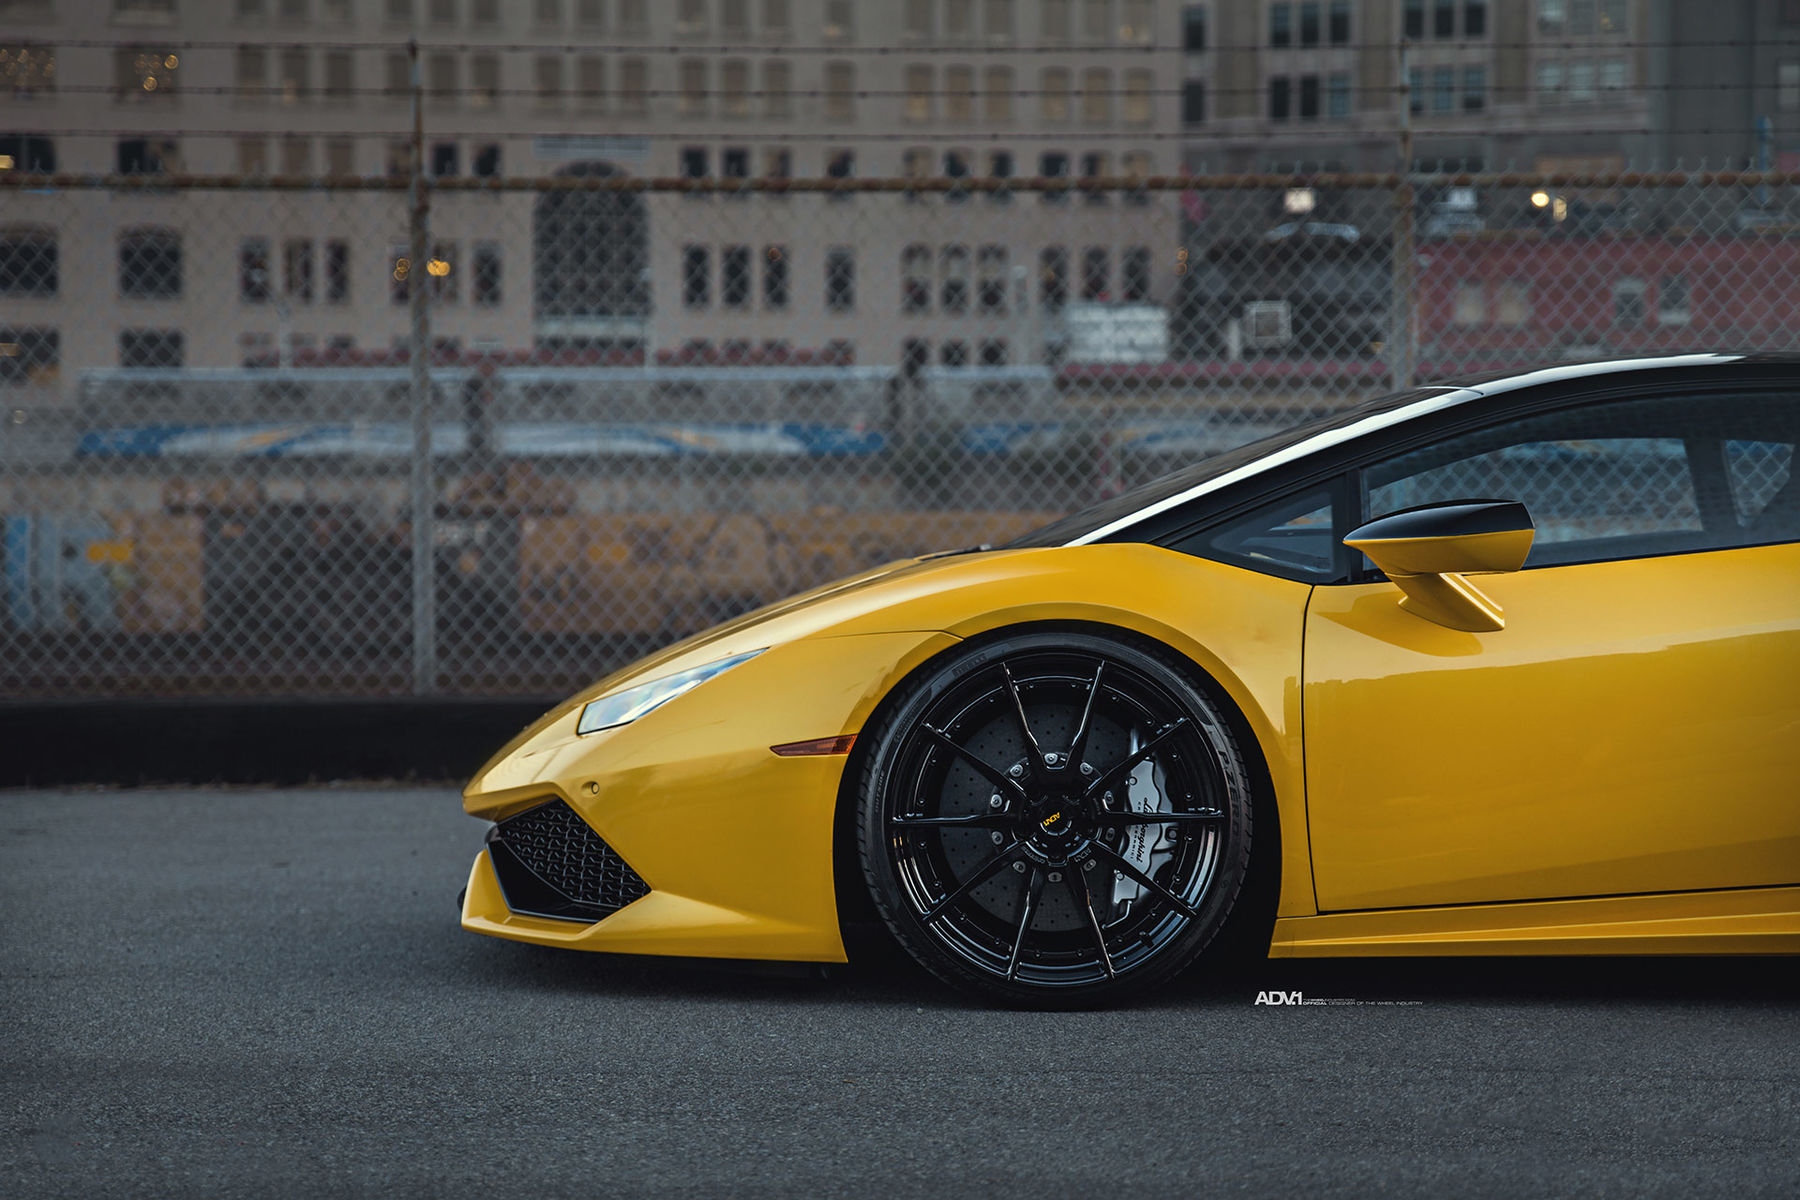 Lamborghini Huracan | Yellow Lamborghini Huracan LP610-4 - ADV.1 ADV10 M.V2 CS Series Gloss Black Wheels